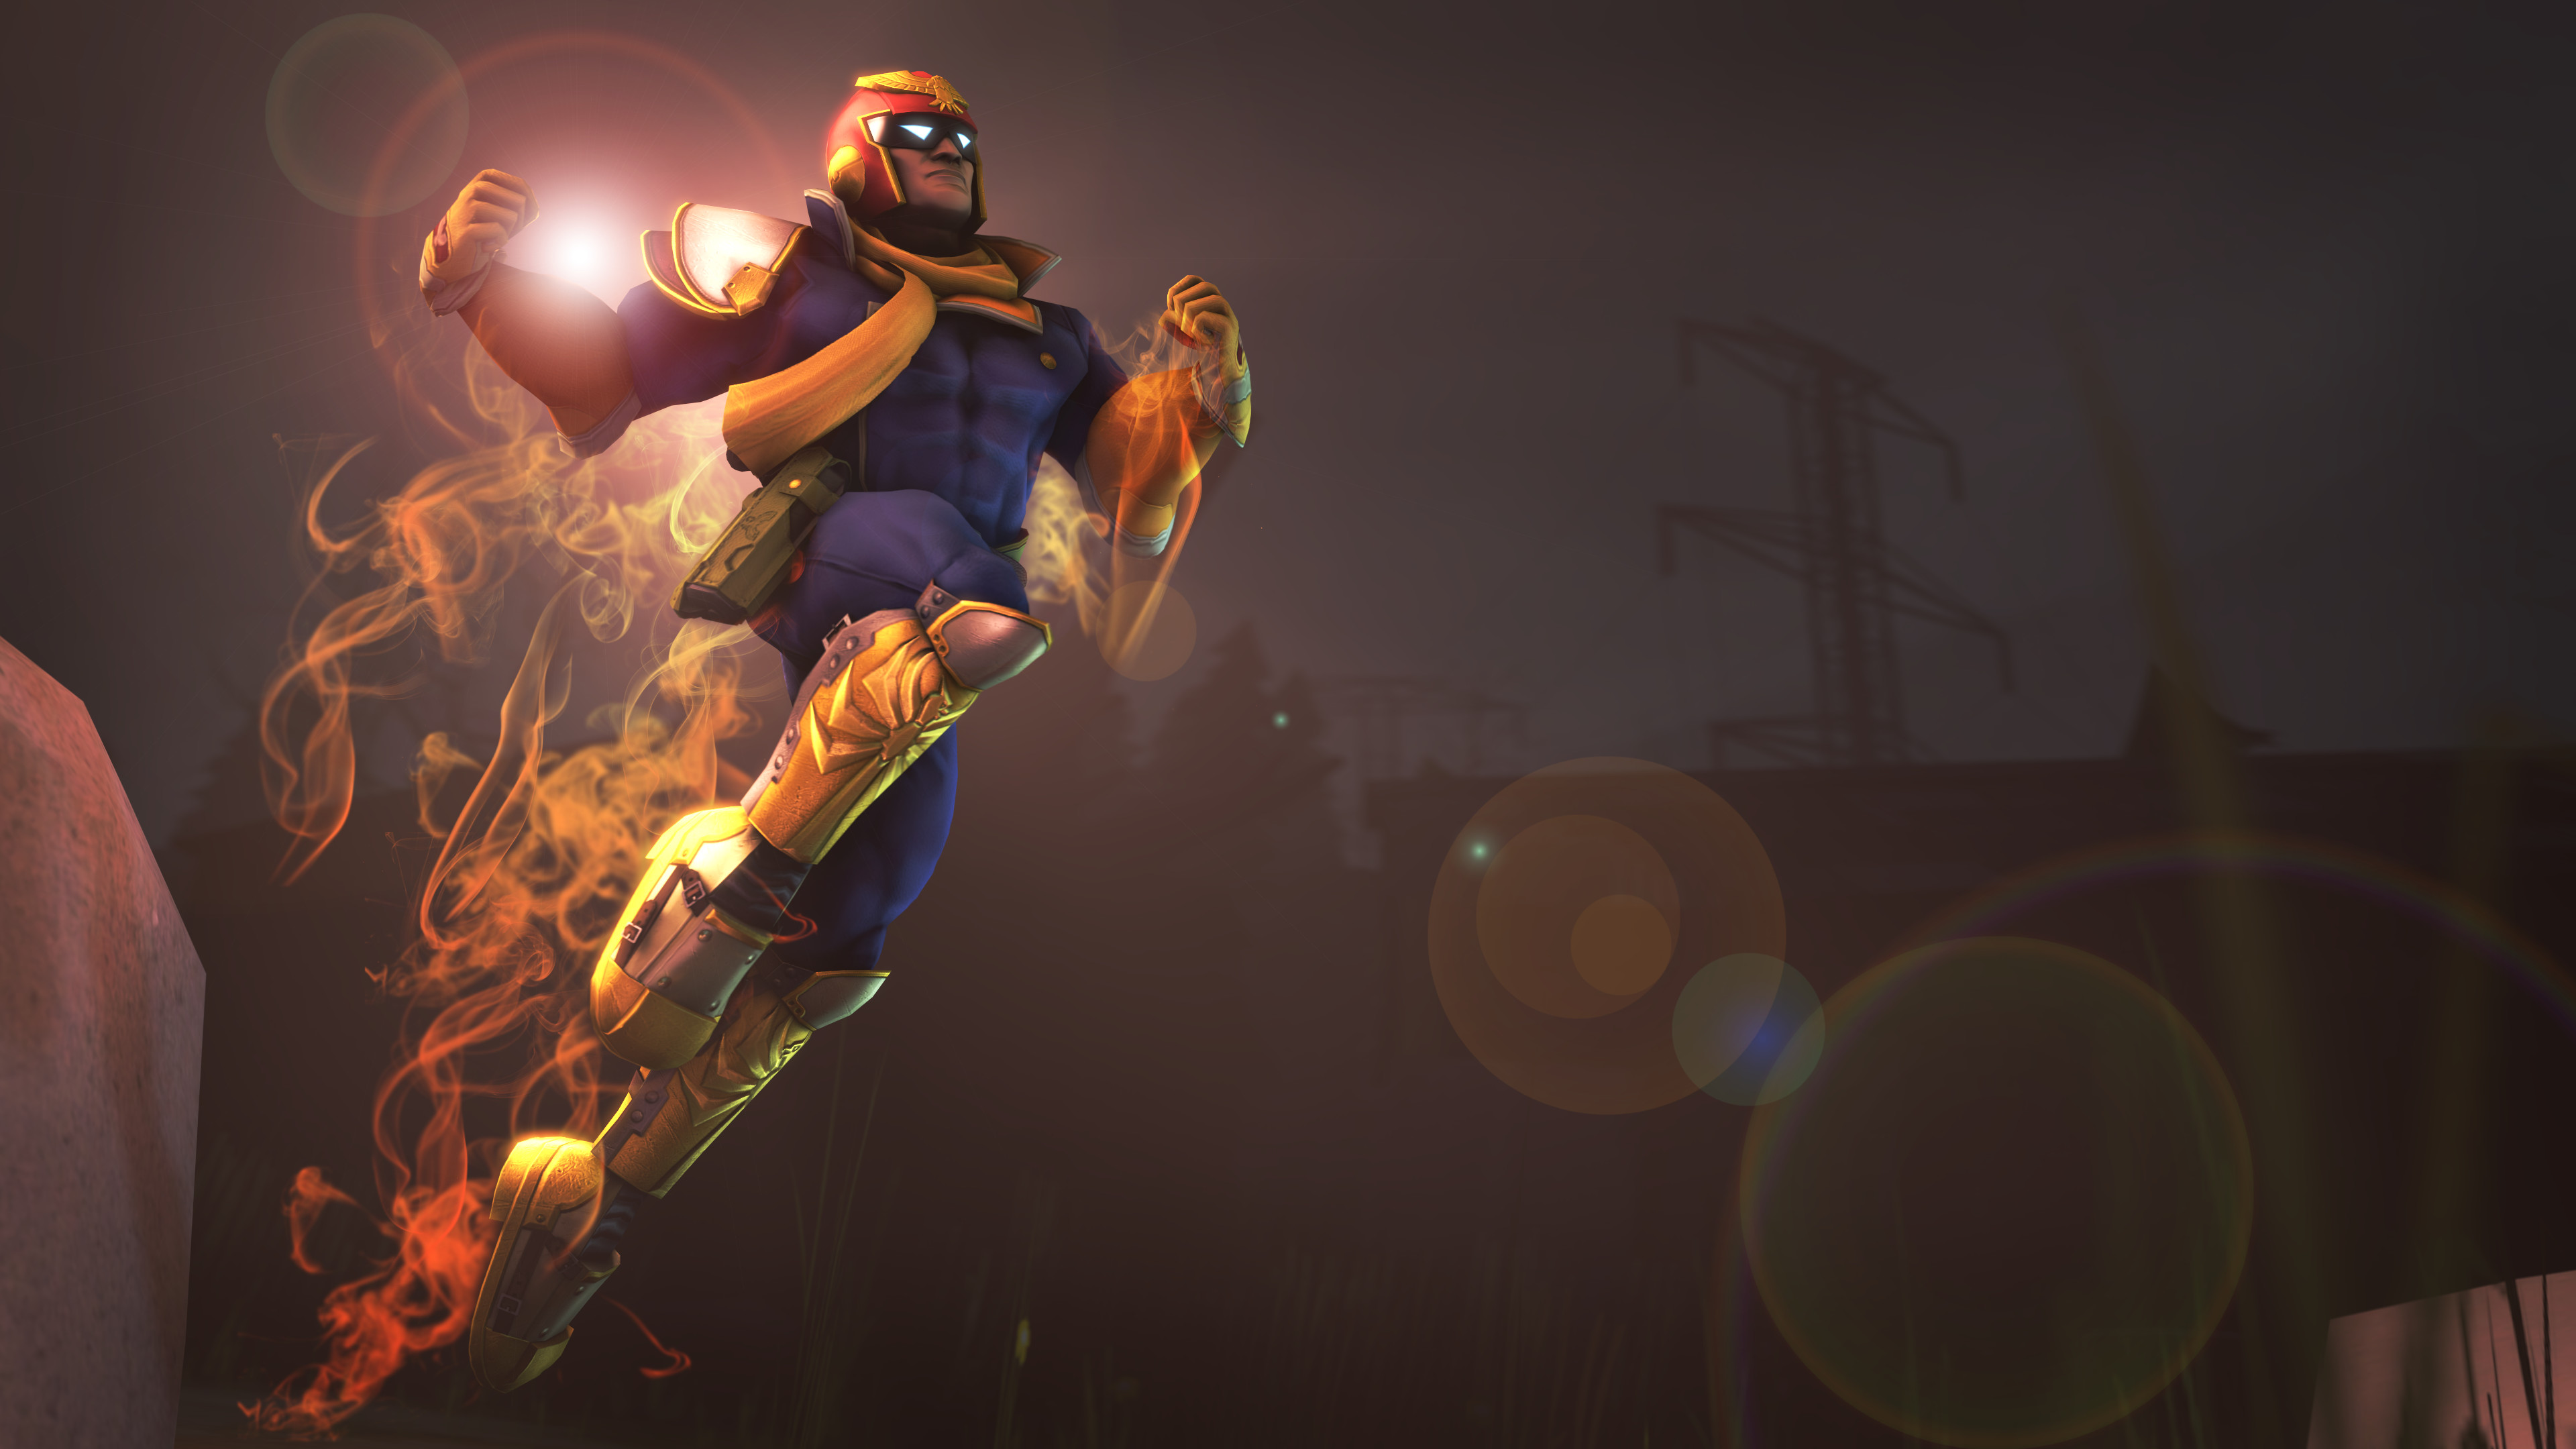 captain falcon 1558221479 - Captain Falcon - hd-wallpapers, games wallpapers, fictional character wallpapers, 4k-wallpapers